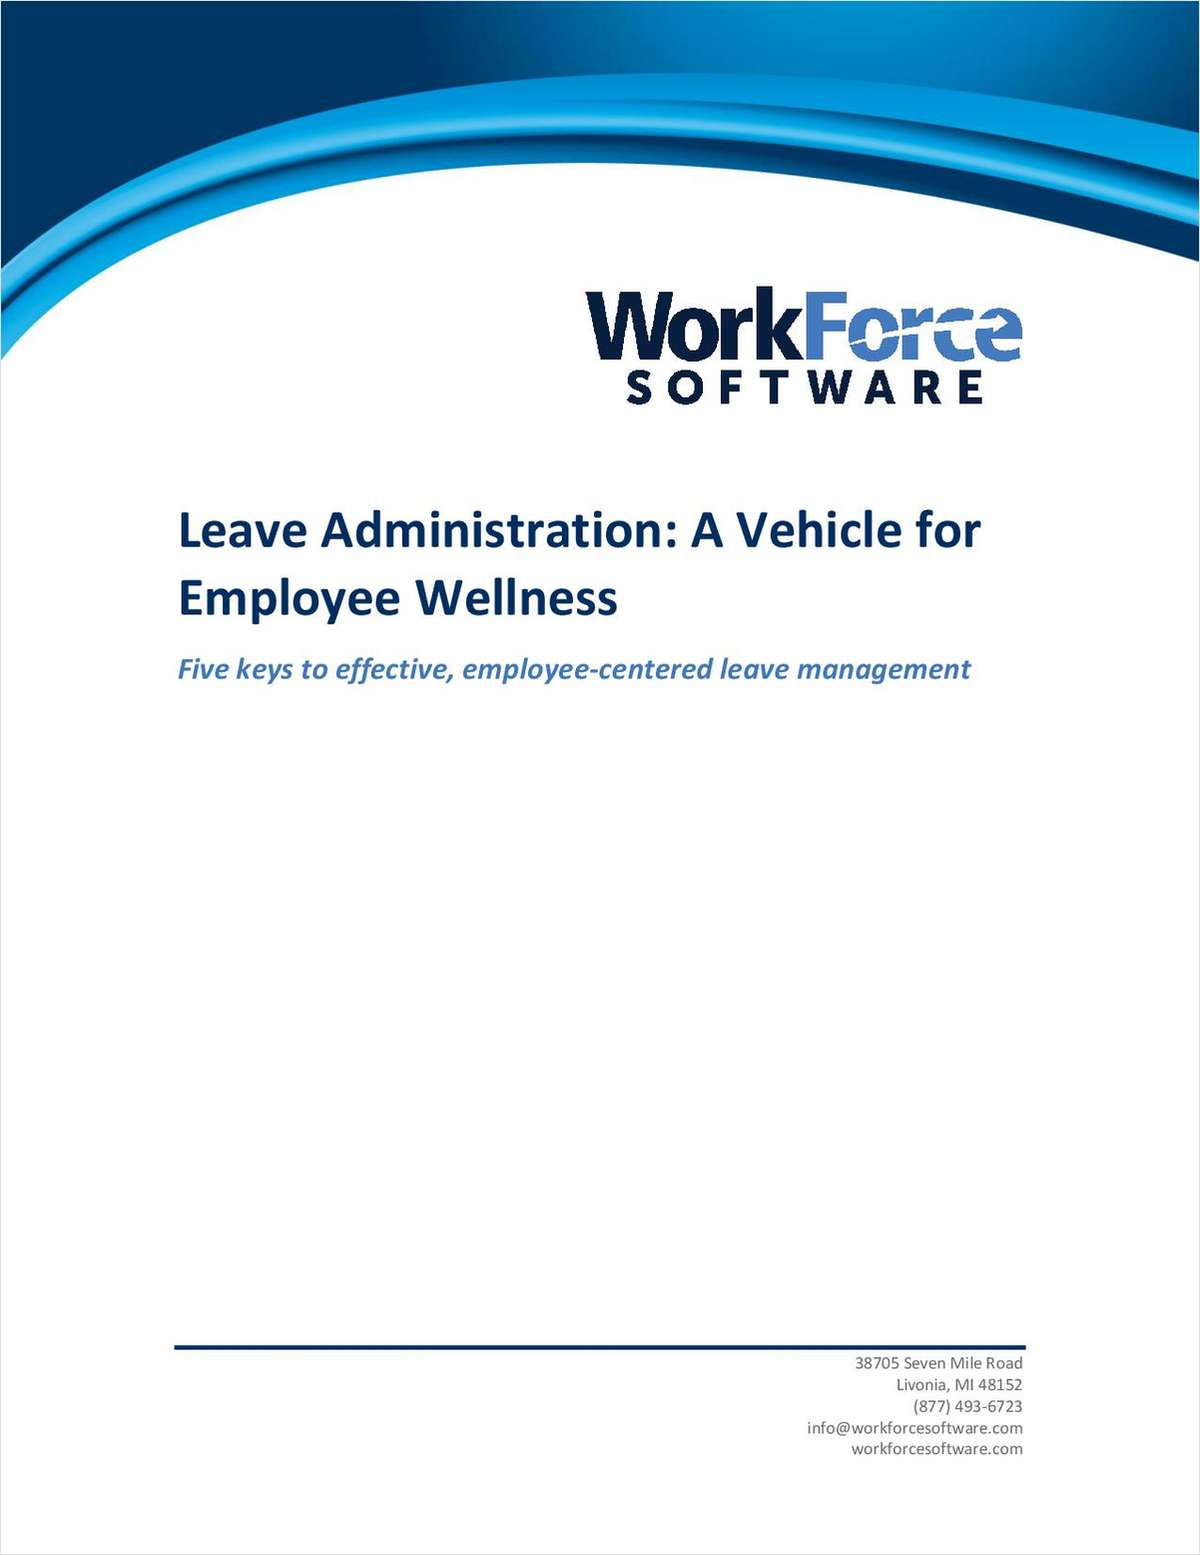 Leave Administration: A Vehicle for Employee Wellness